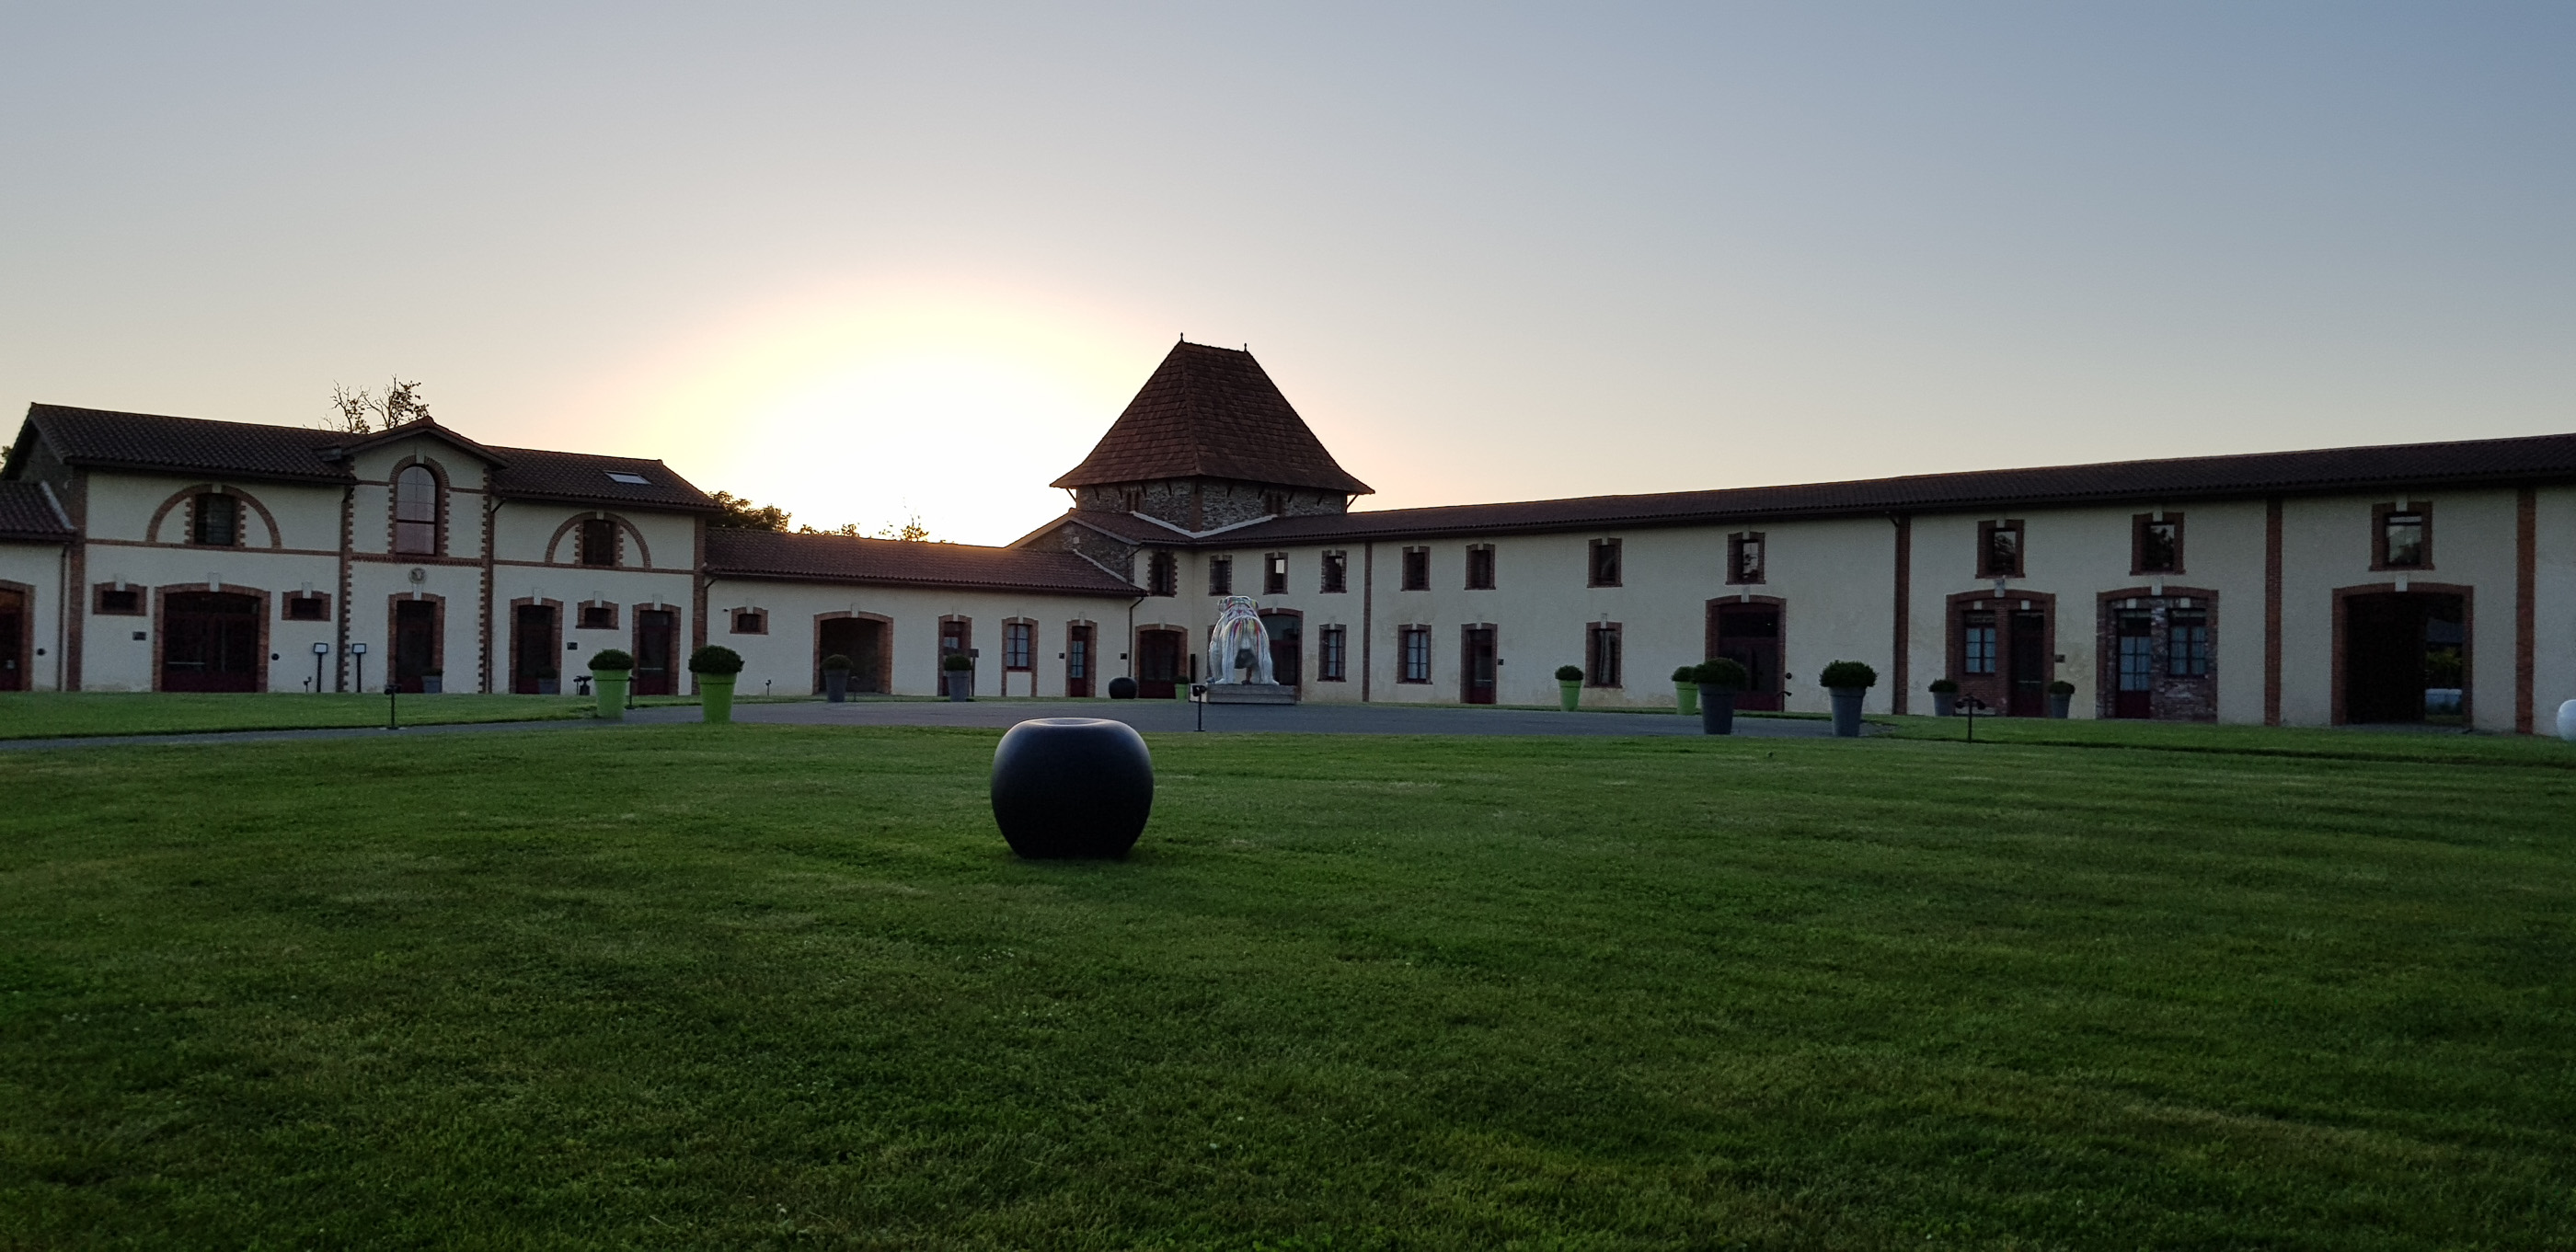 Sunset at Domaine des Lys Luxury Hotel in the Pays de la Loire in Ancenis